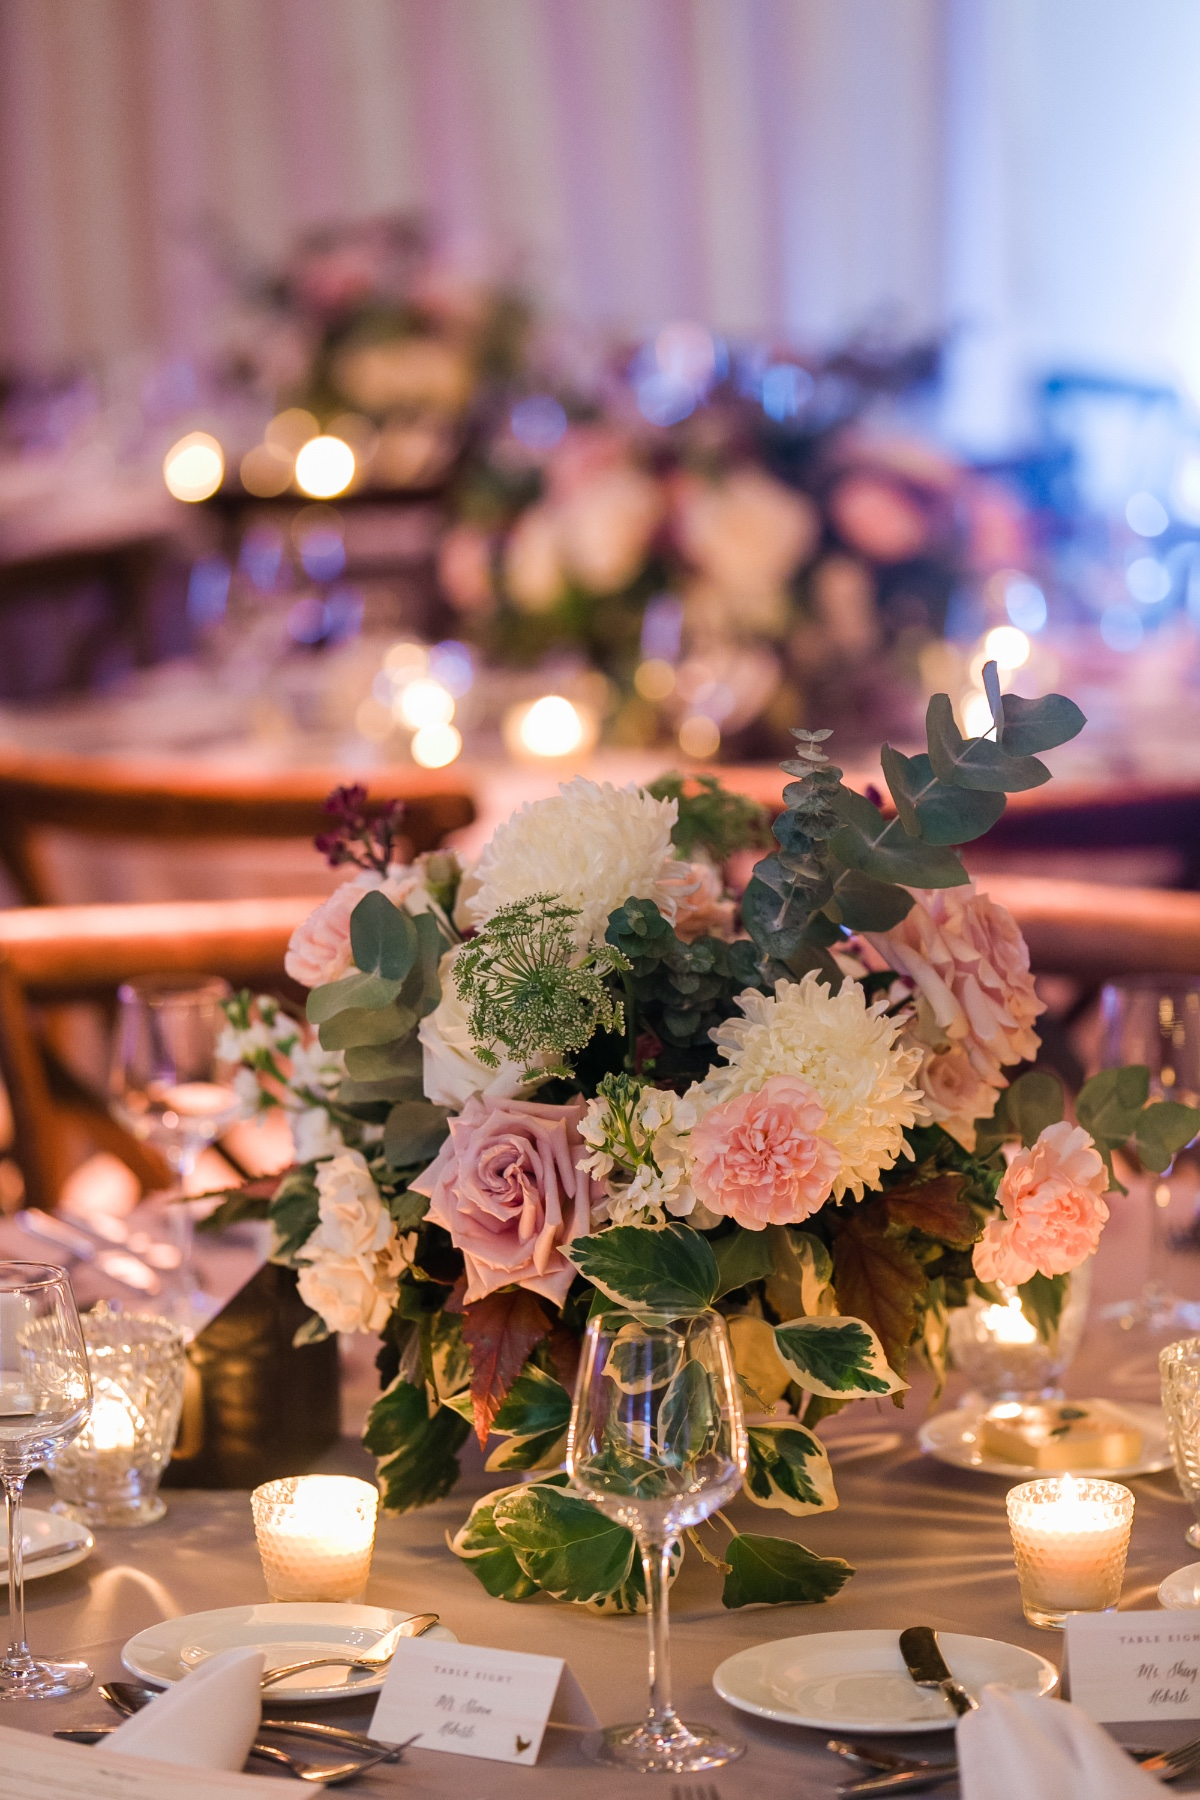 pink and white wedding floral centerpiece